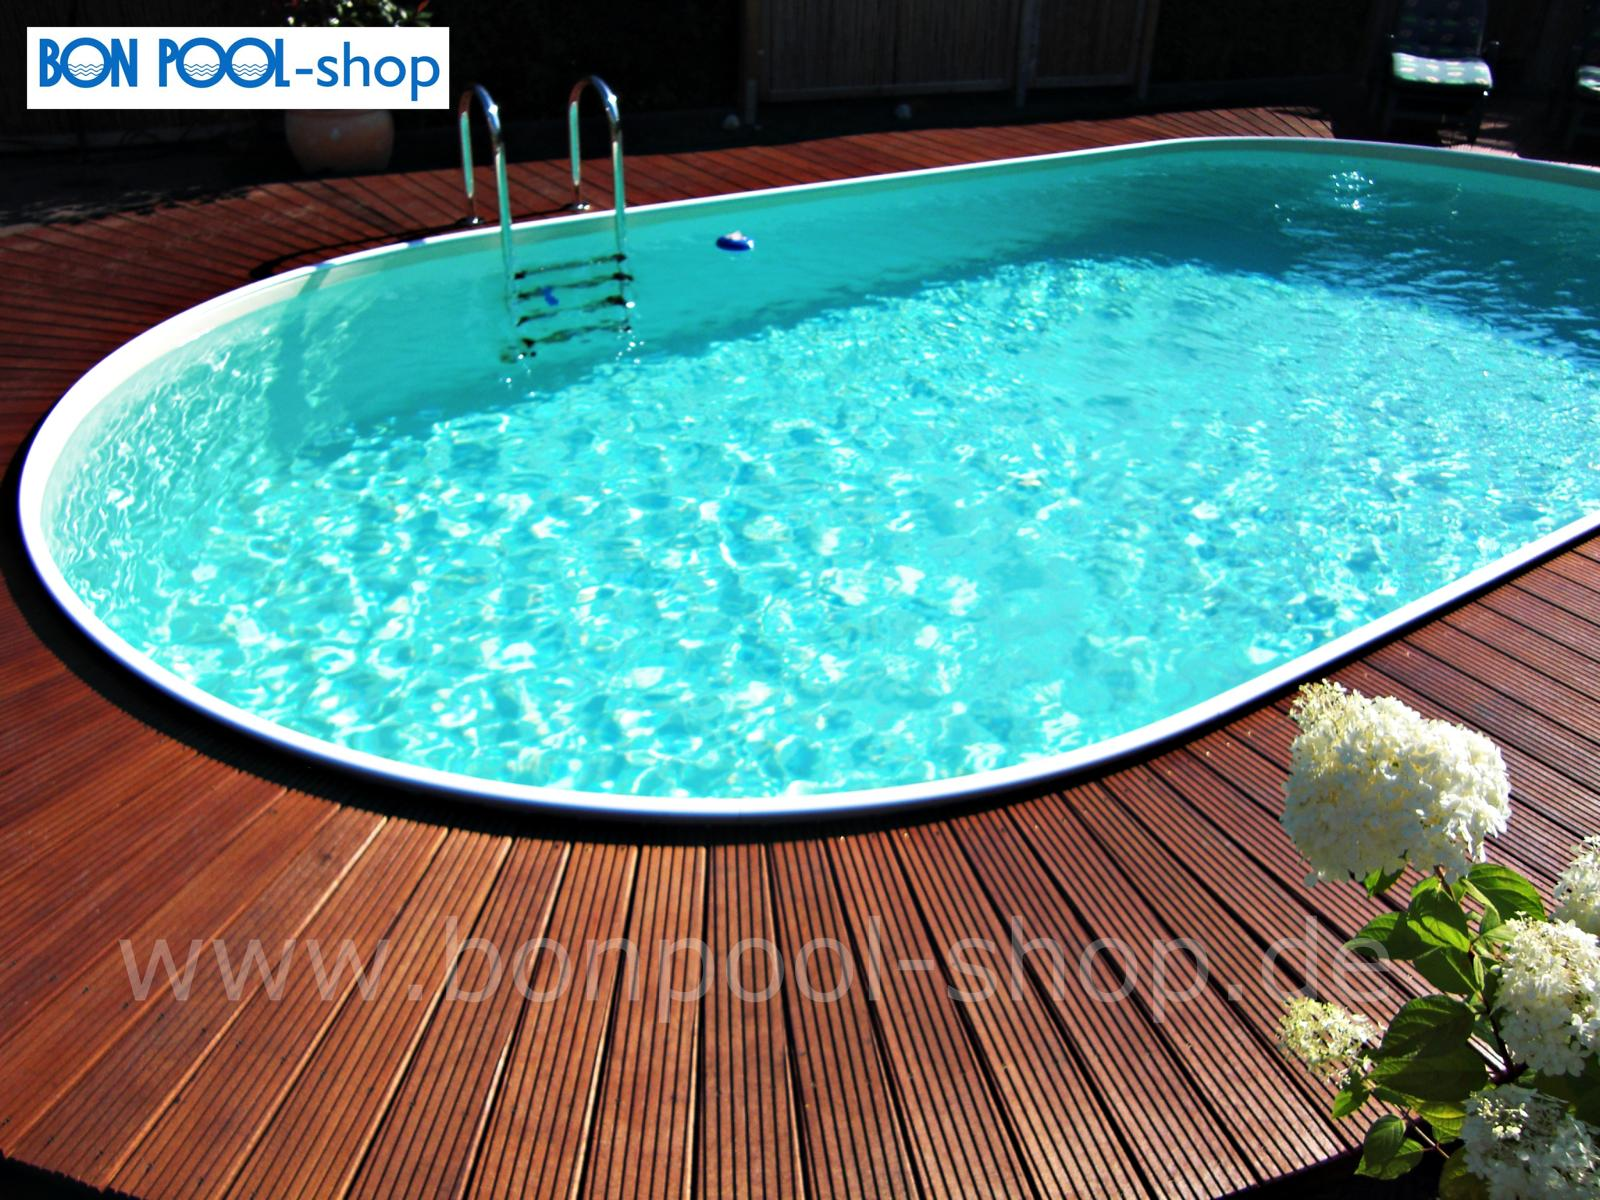 Pool stahlwand interesting ovale pools ovalpool ovalpools for Gartenpool oval